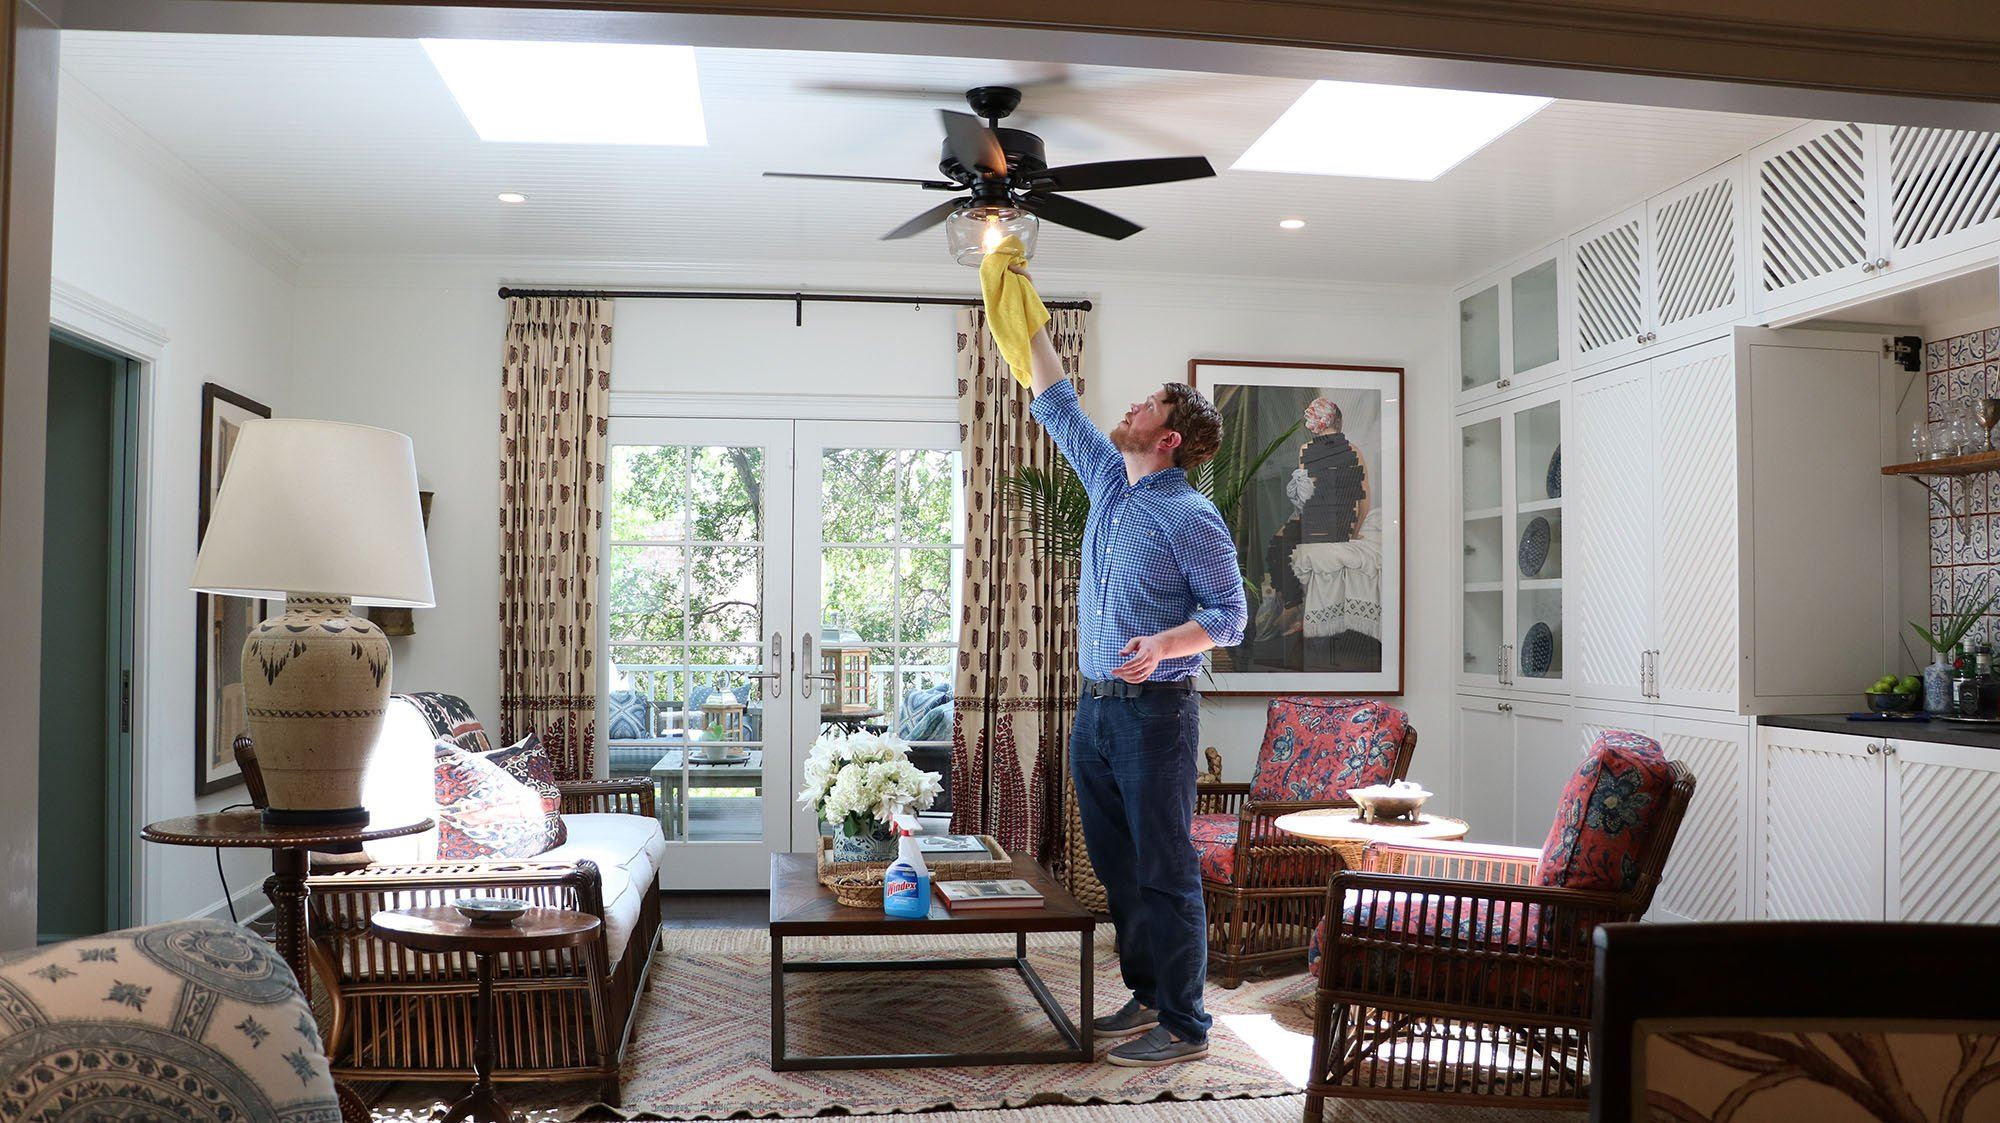 How to clean a ceiling fan without a ladder